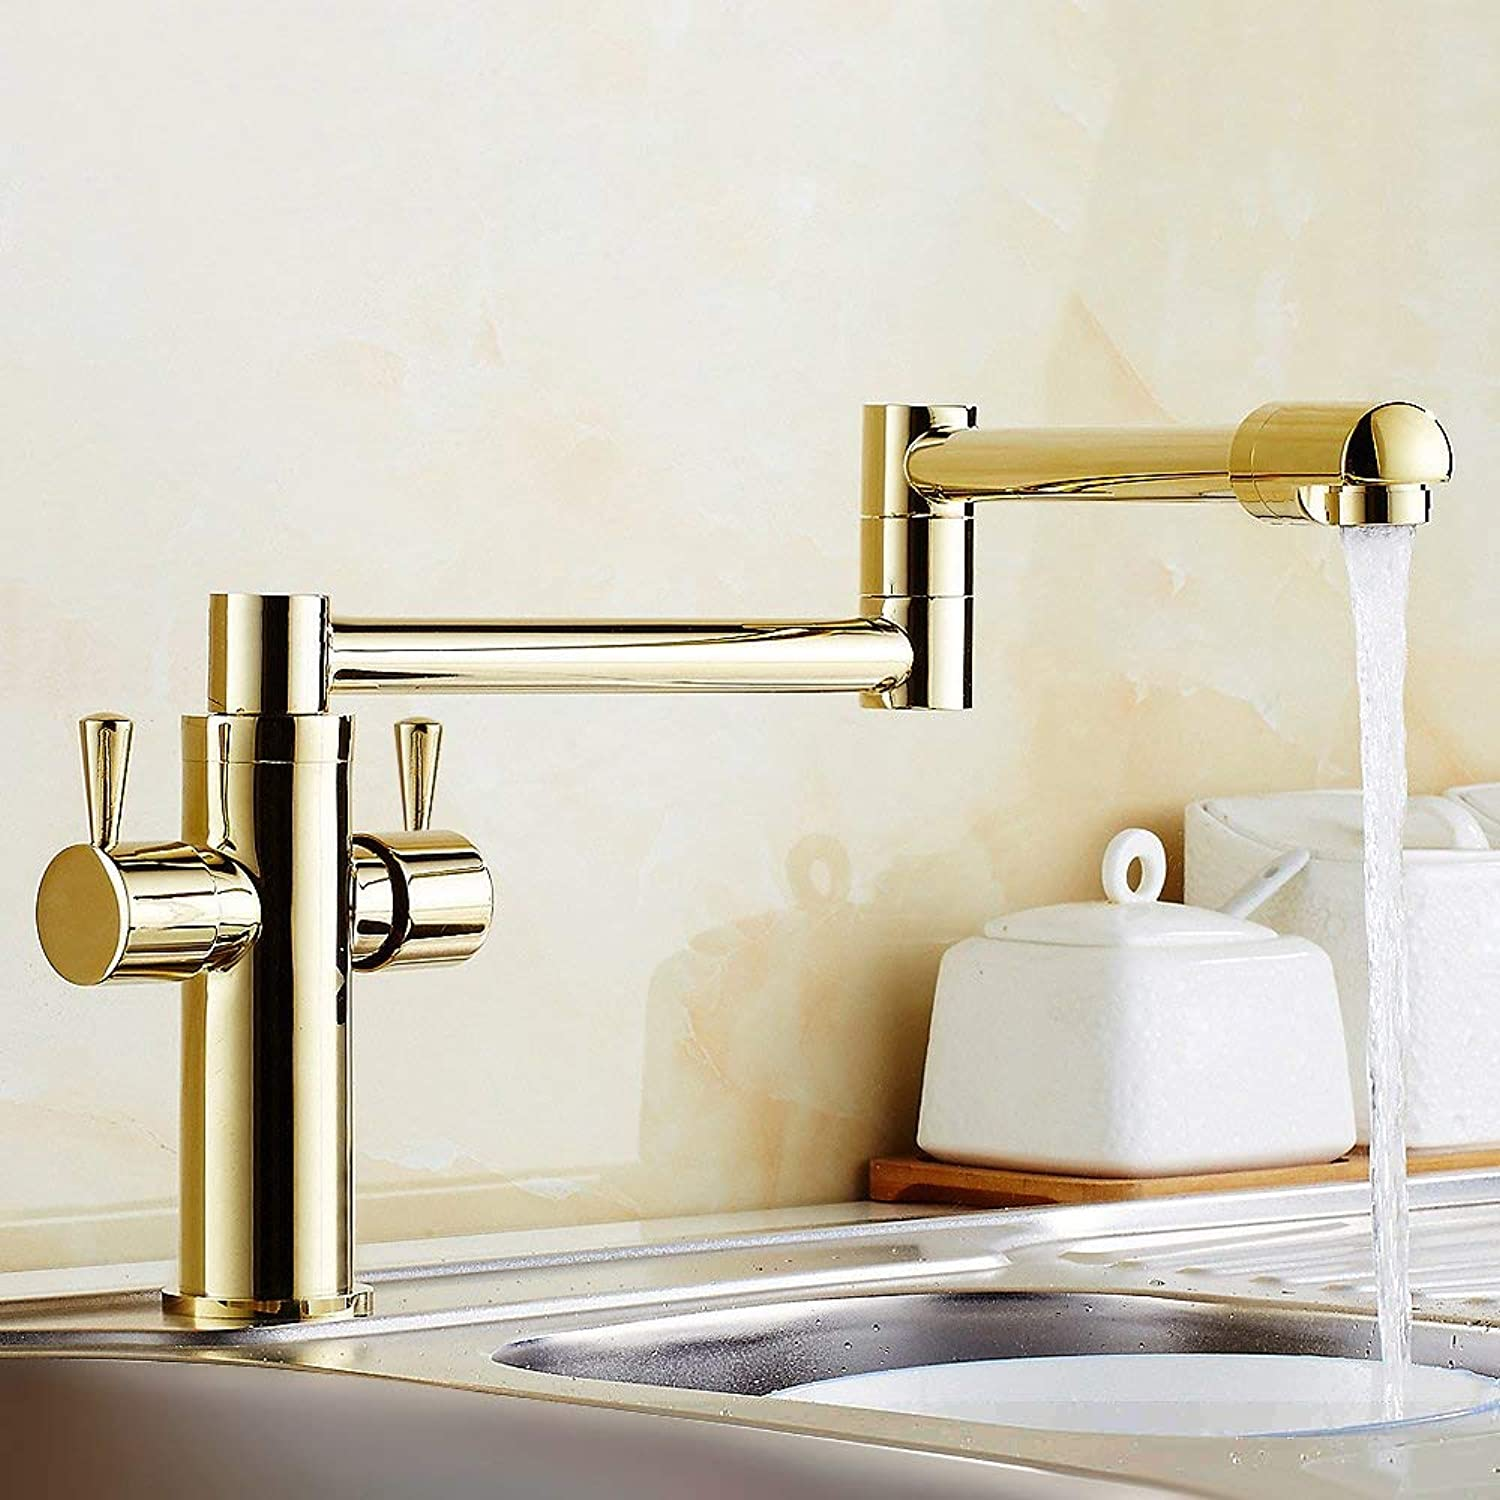 BDYJY ? Deck-Mount Retractable Pot Filler Kitchen Tap with Double Handle in Multi Finish (gold)